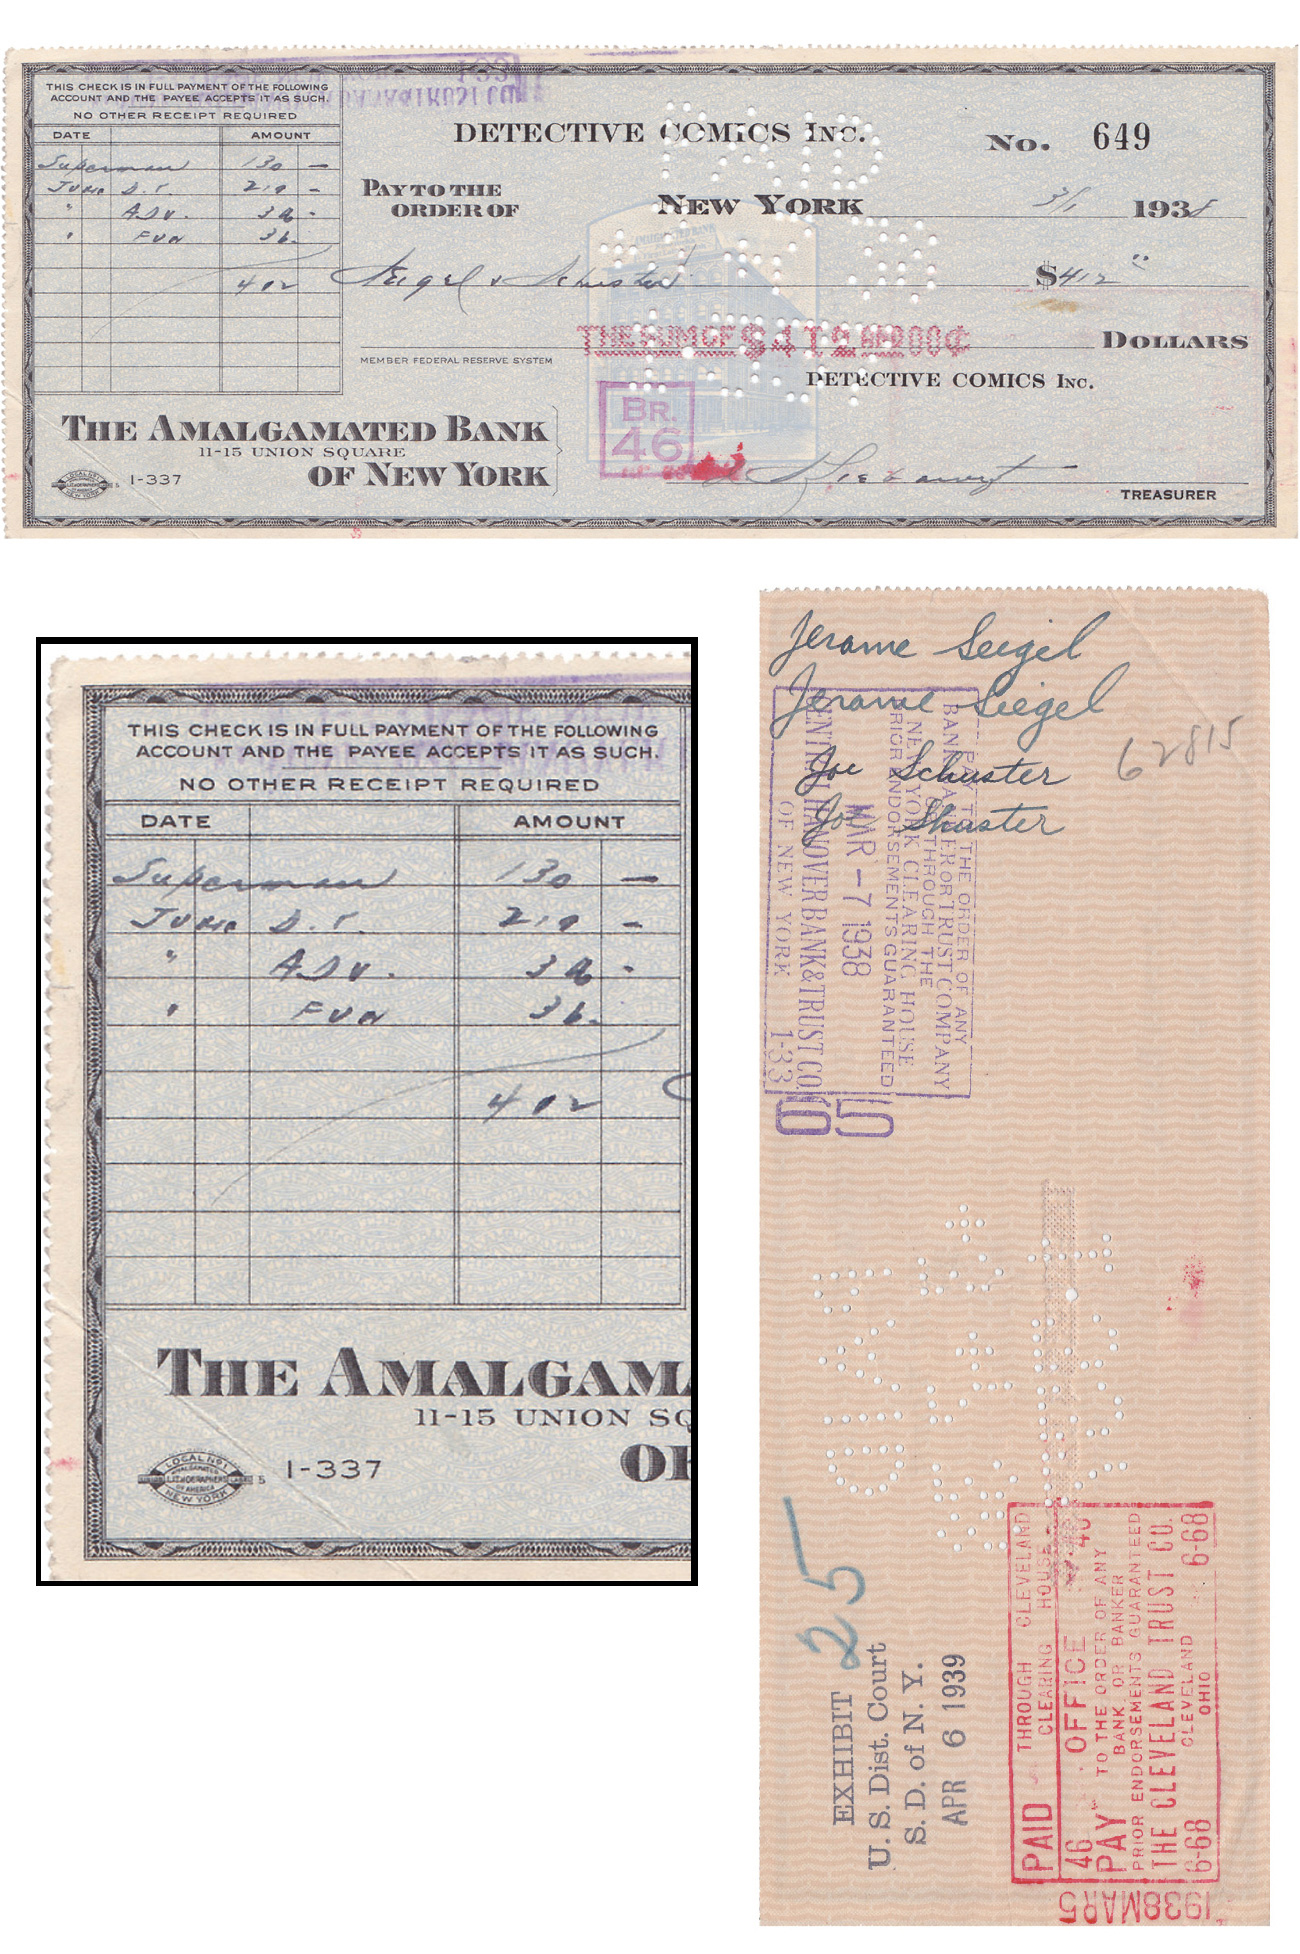 """The Check That Bought Superman"" at Auction (1938 Payment Made by DC Comics to Siegel & Shuster for Character Ownership)"